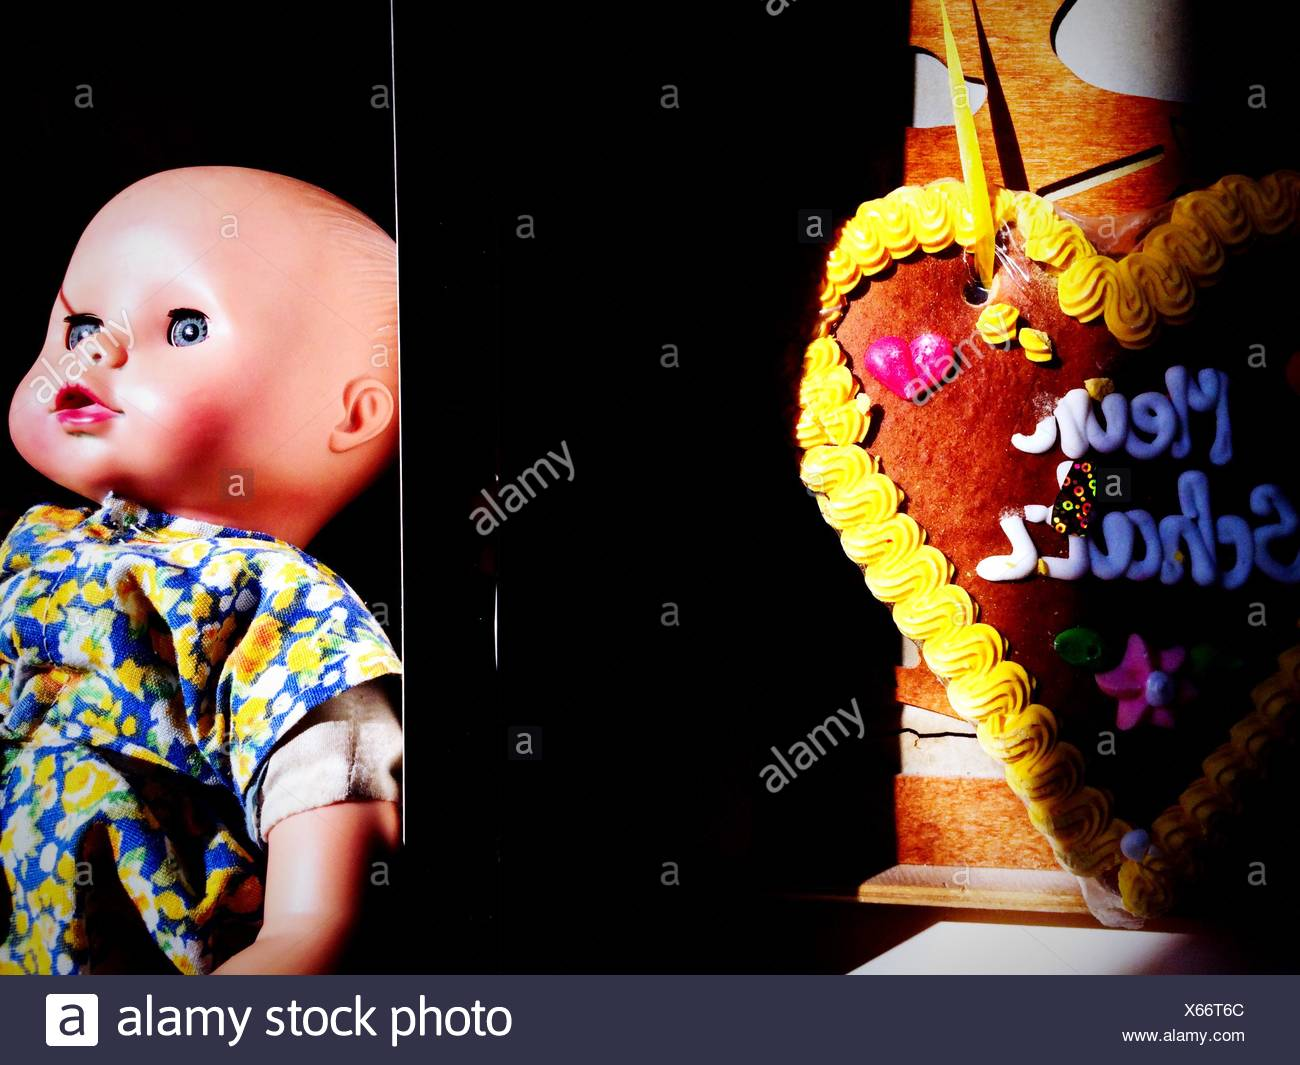 Close-Up Of A Doll Over Black Background - Stock Image